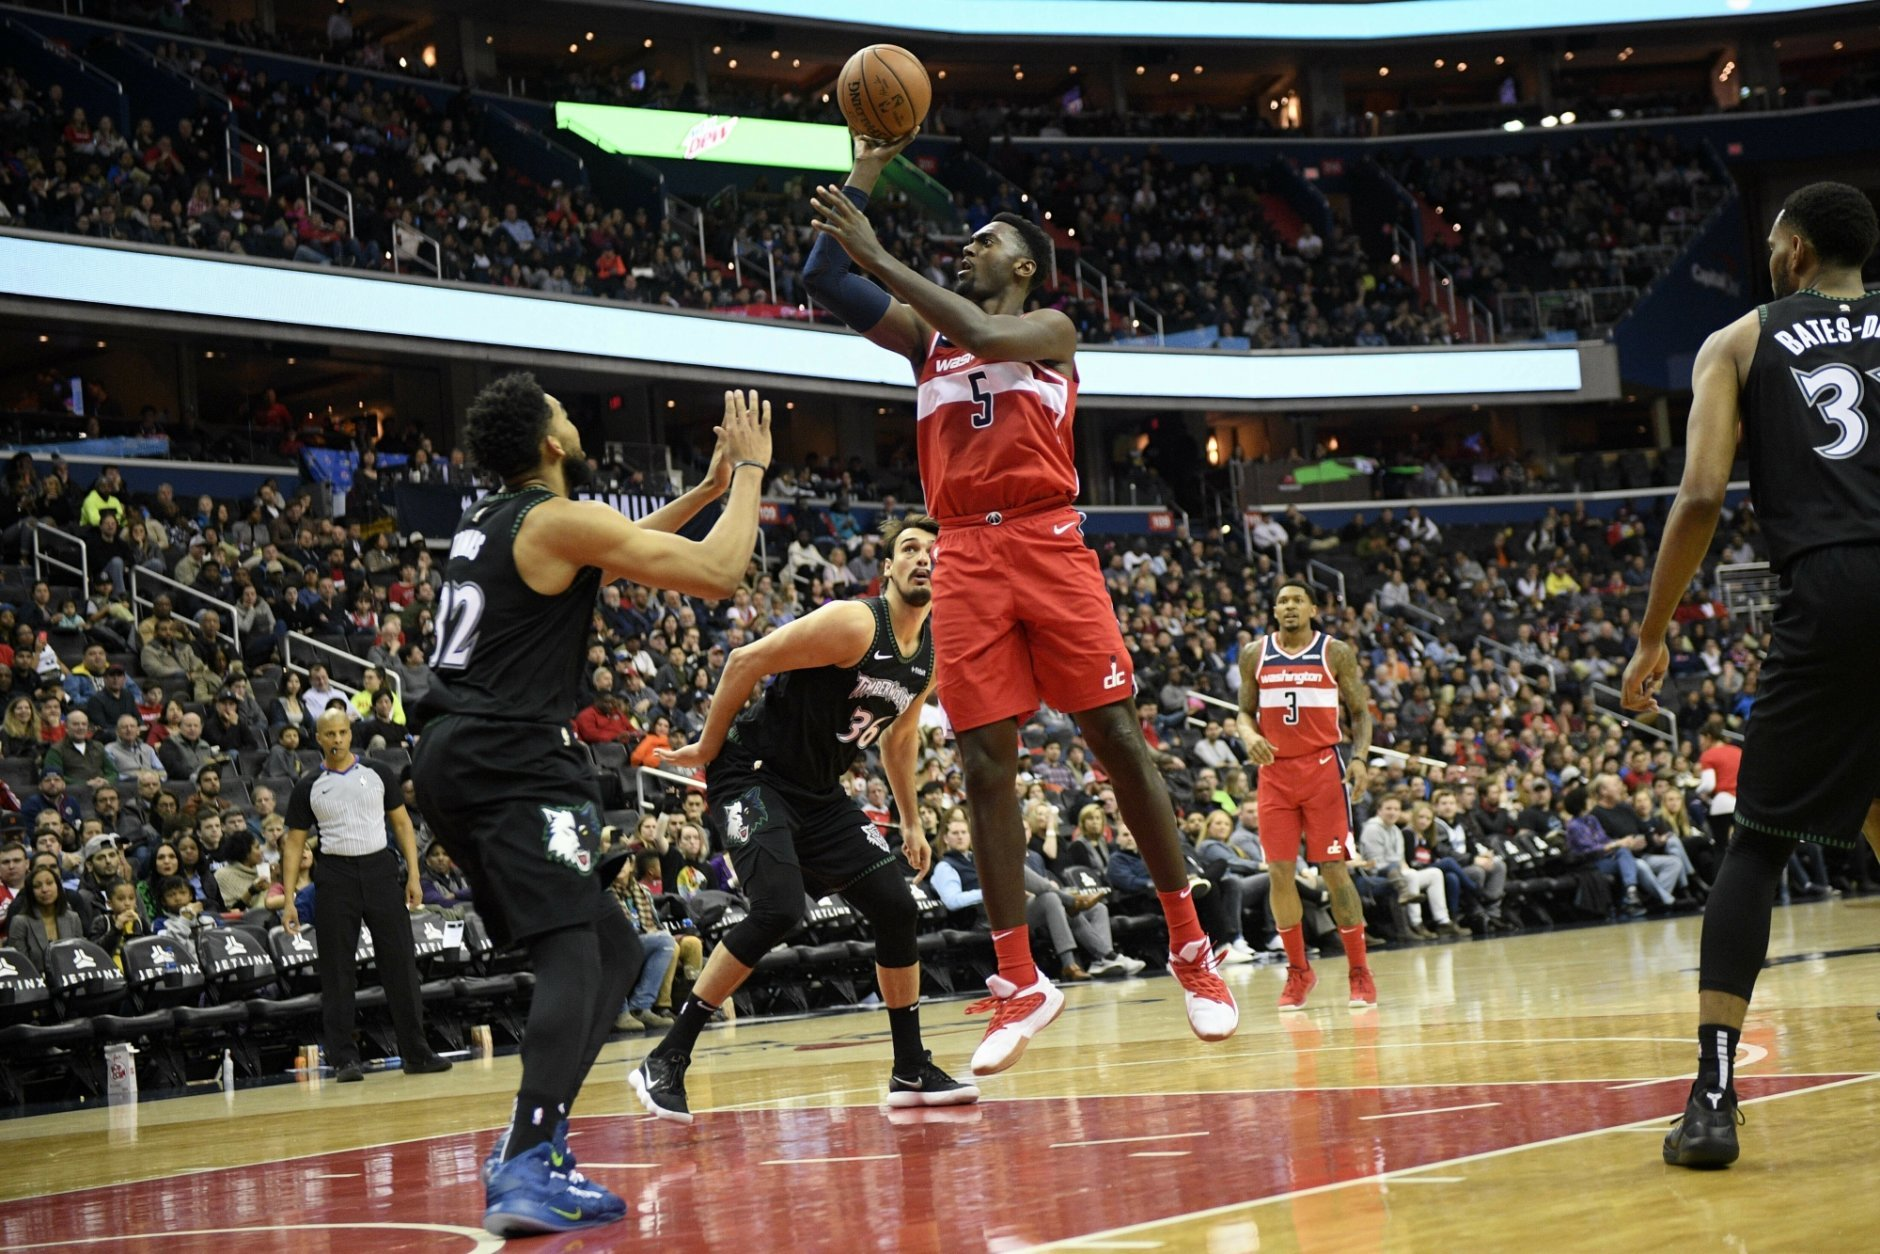 Washington Wizards forward Bobby Portis (5) shoots against Minnesota Timberwolves center Karl-Anthony Towns (32) and forward Dario Saric (36) during the second half of an NBA basketball game, Sunday, March 3, 2019, in Washington. Also seen is Wizards guard Bradley Beal (3). The Wizards won 135-121. (AP Photo/Nick Wass)